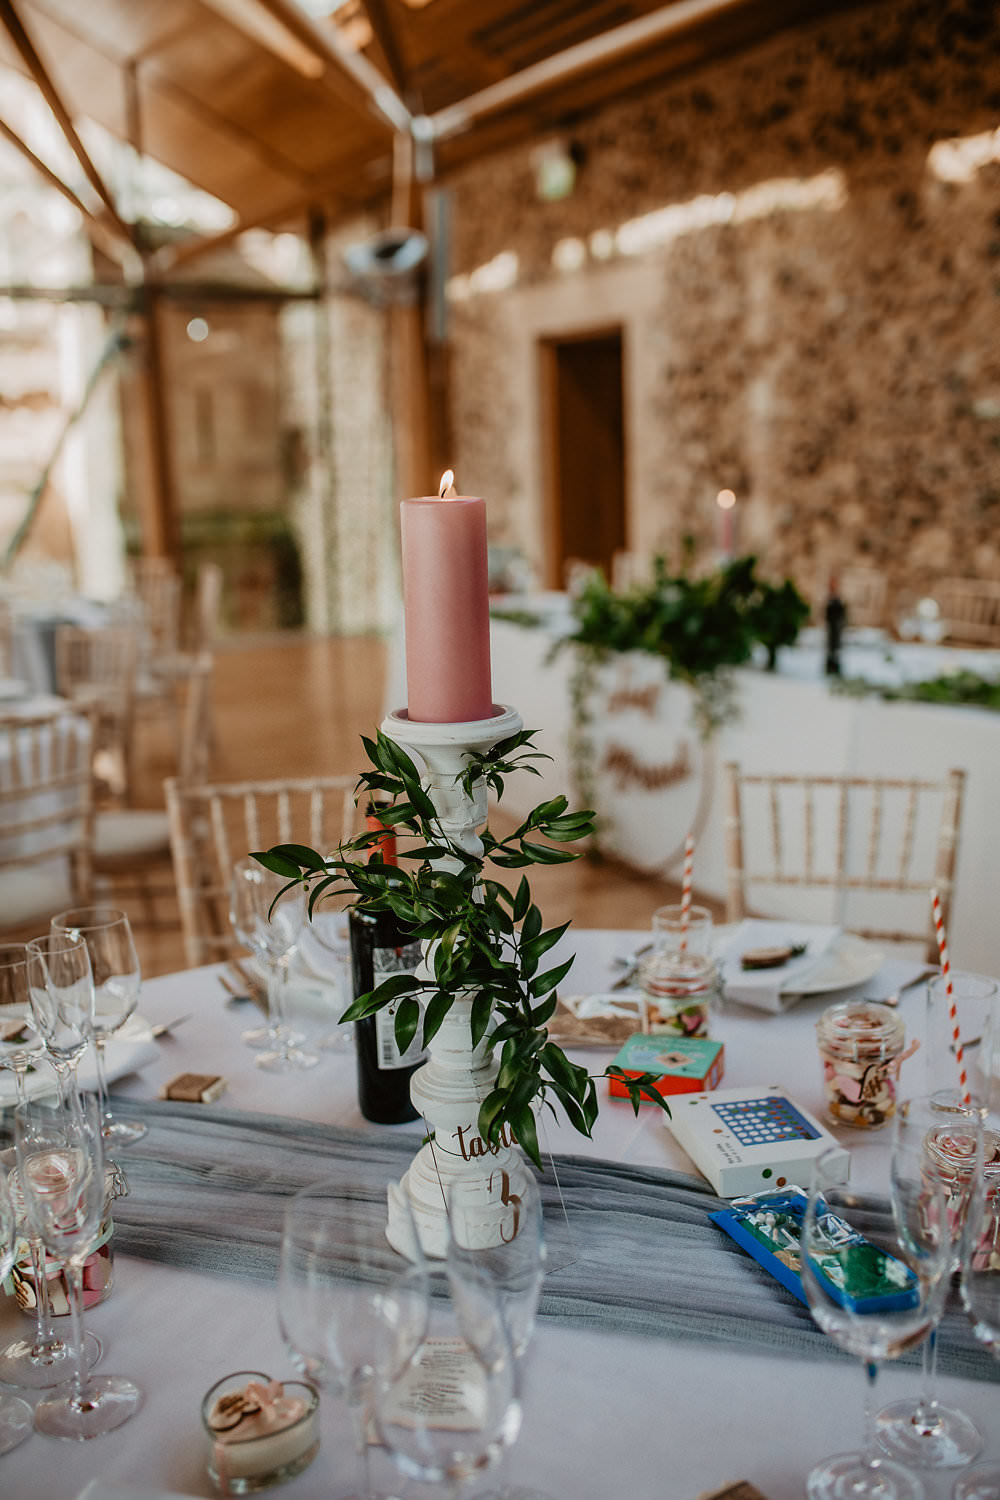 Centrepiece Table Candle Greenery Norwich Cathedral Wedding Camilla Andrea Photography